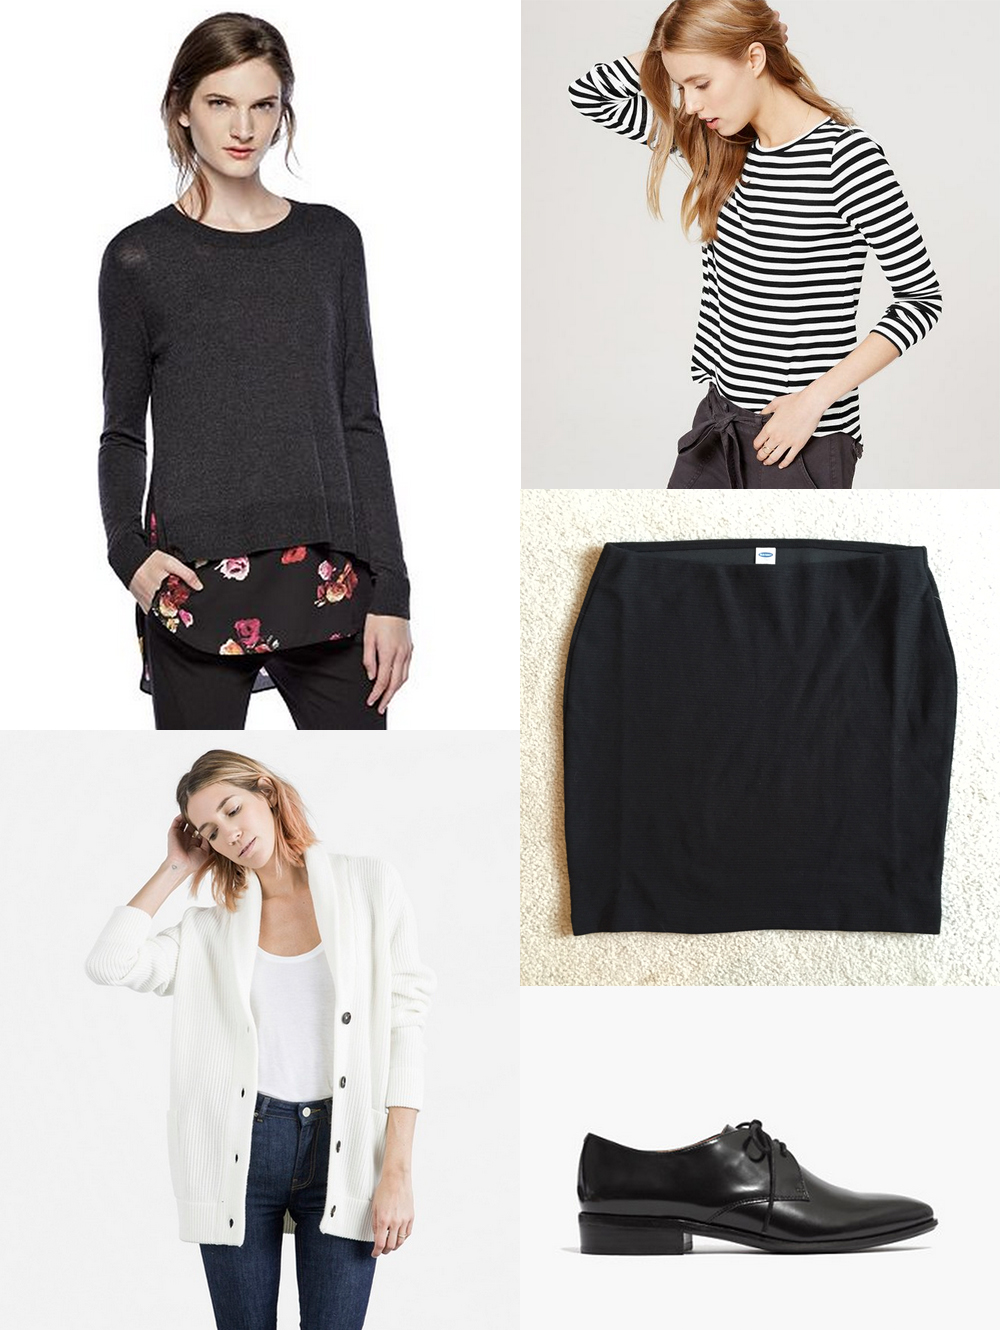 October wardrobe additions -- Cotton Cashmere Cat Hair